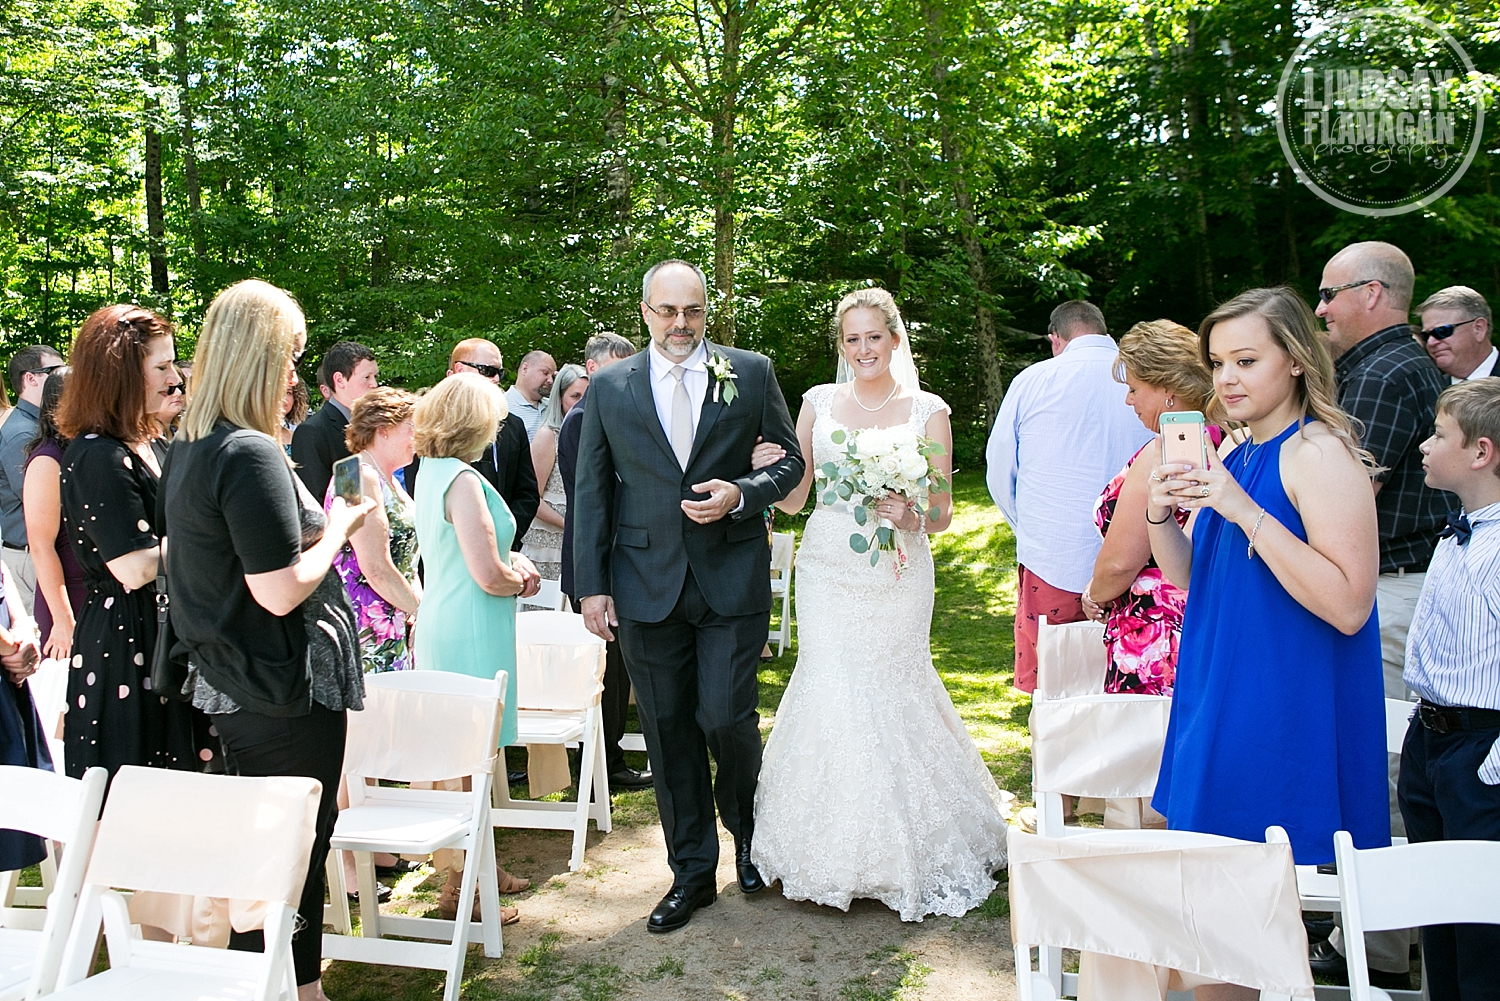 Eagle-Mountain-House-New-Hampshire-Summer-Wedding-Ceremony